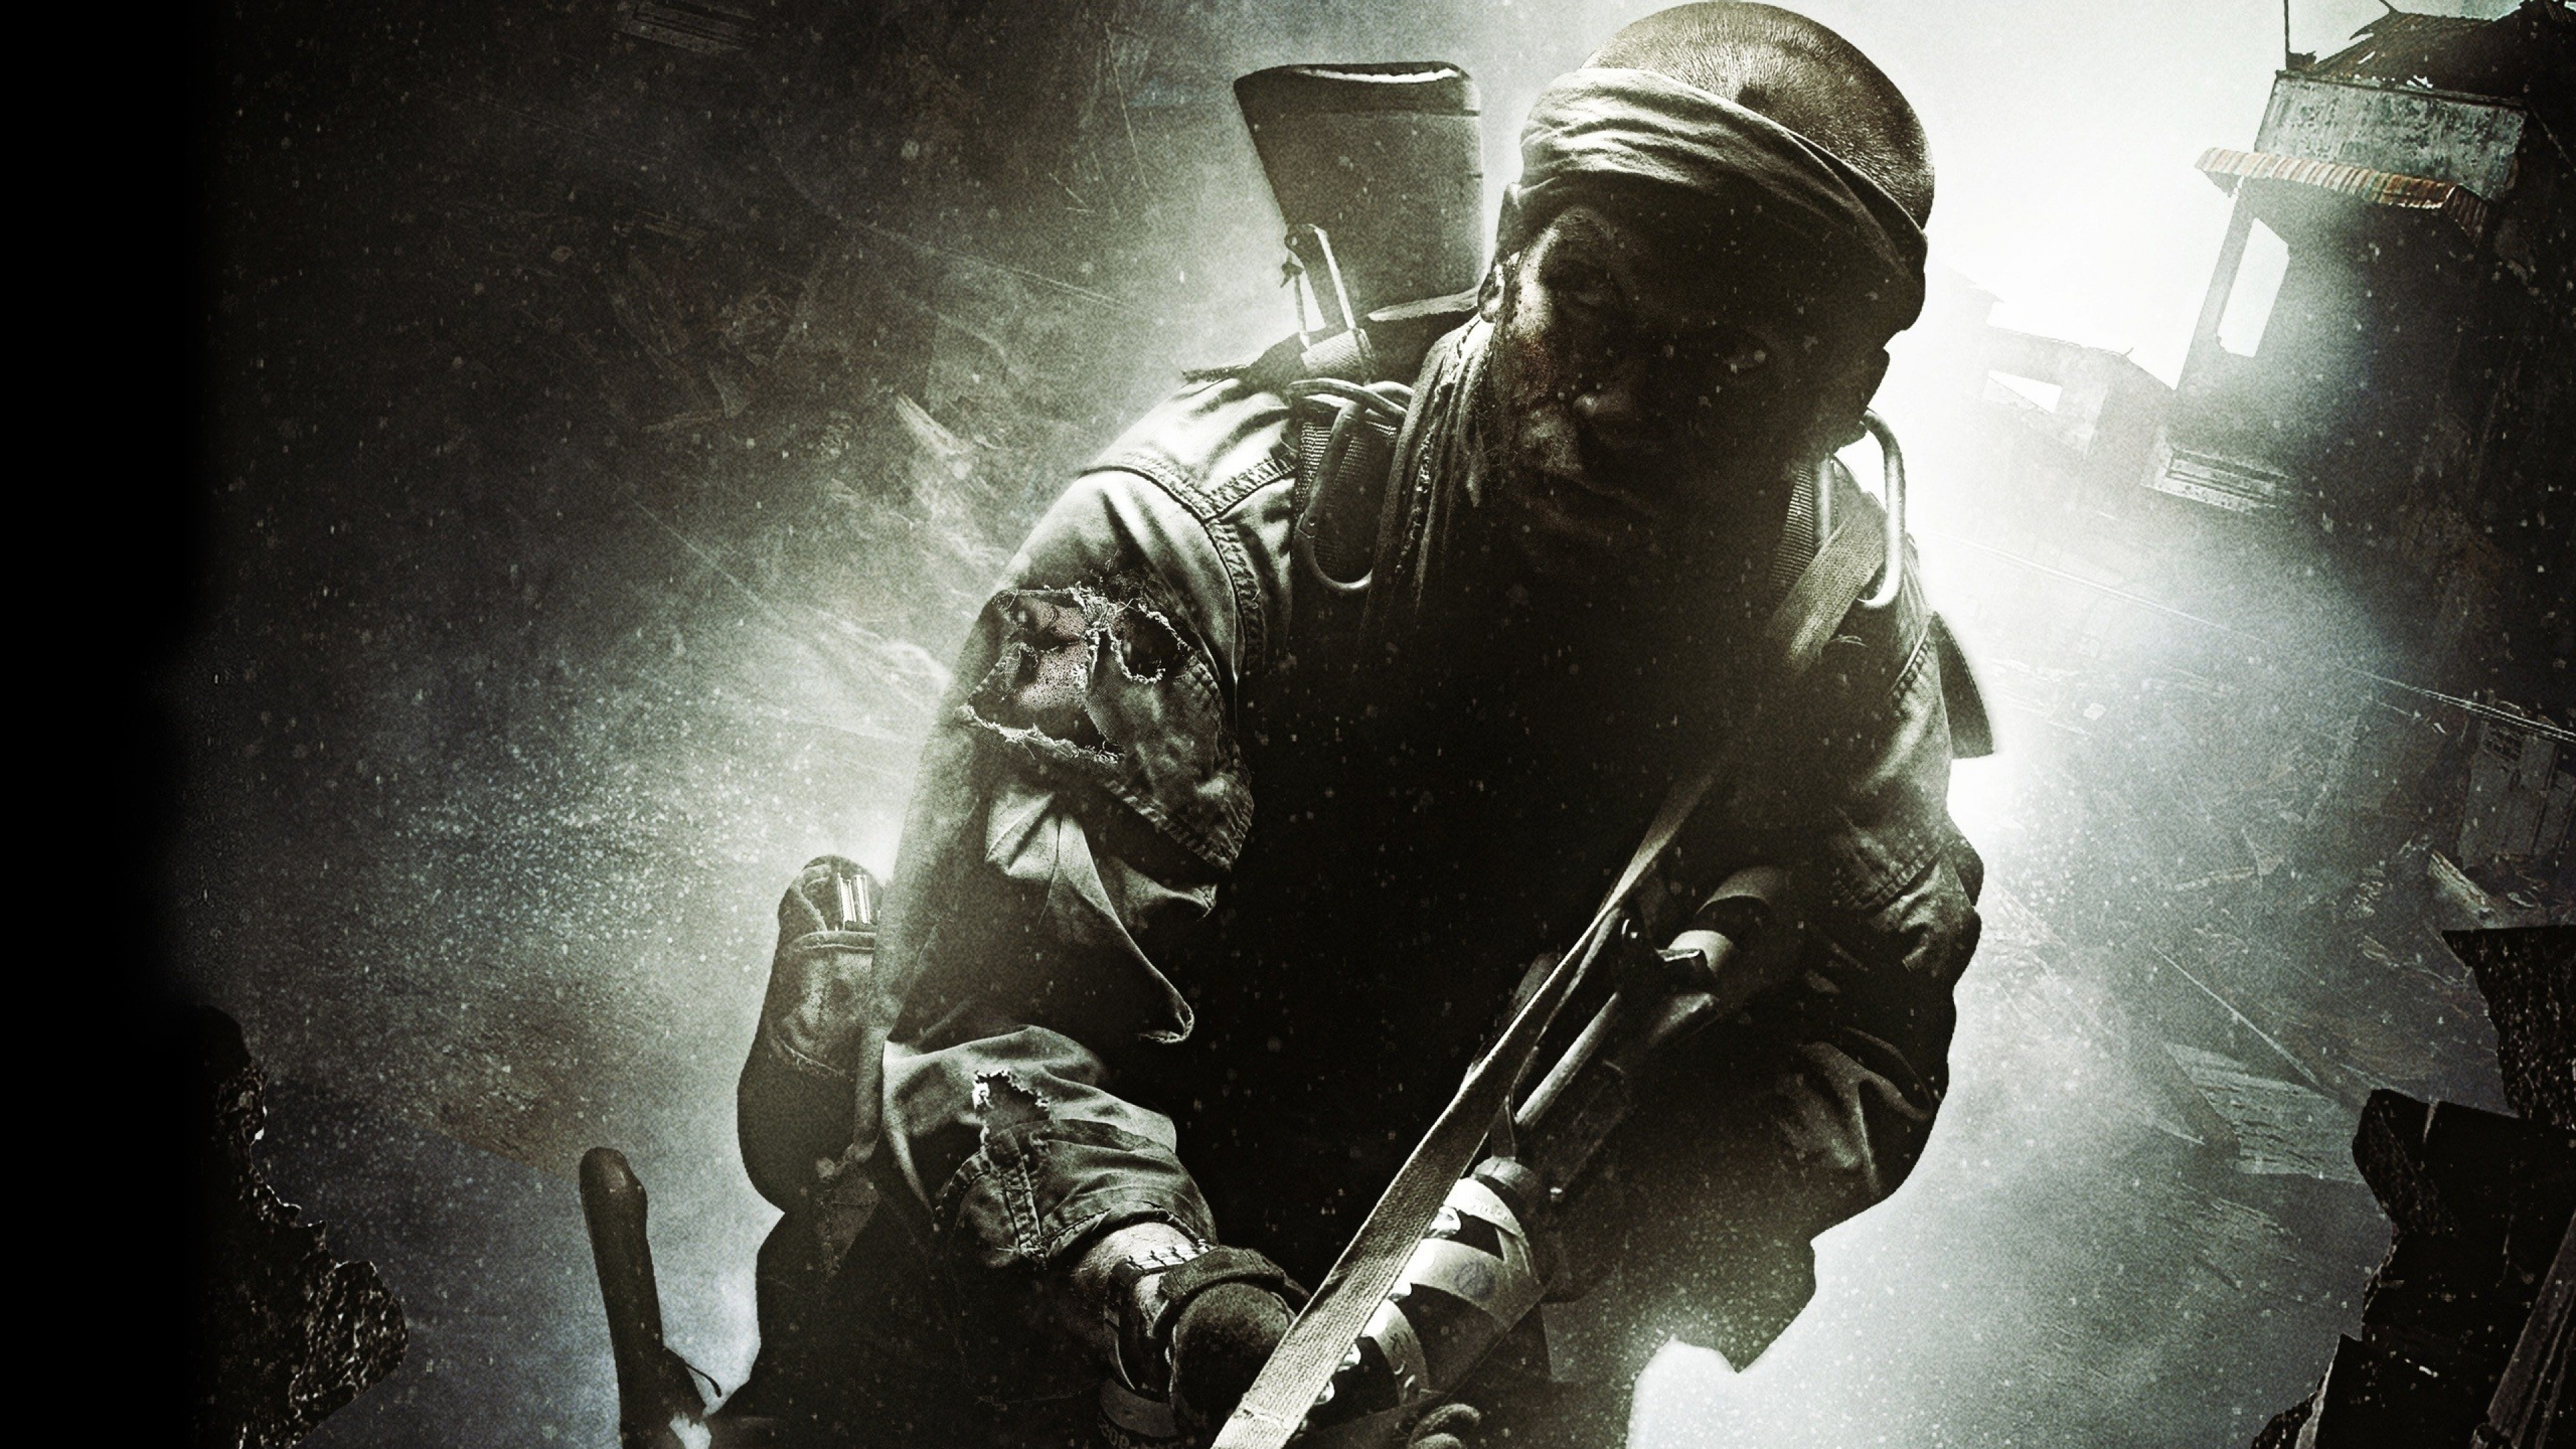 call of duty hd wallpapers - Tag | Download HD Wallpaperhd wallpapers ...